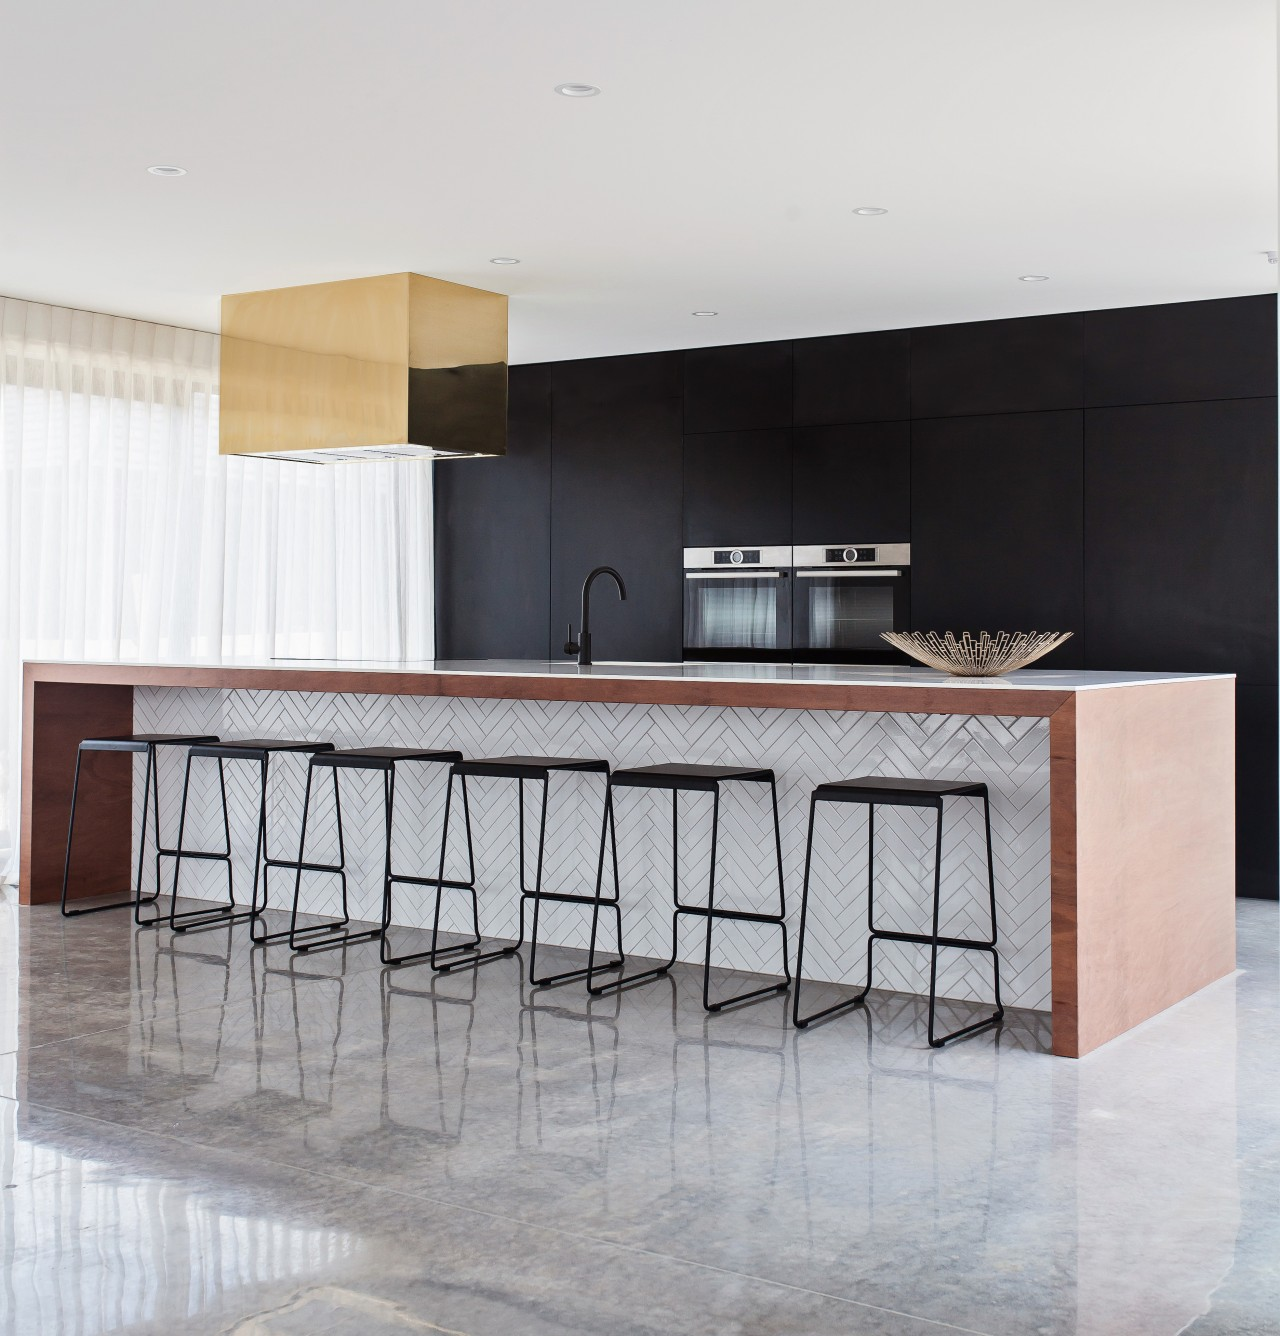 In this kitchen, by owner and designer Annika chair, countertop, floor, flooring, furniture, interior design, kitchen, product design, table, gray, white